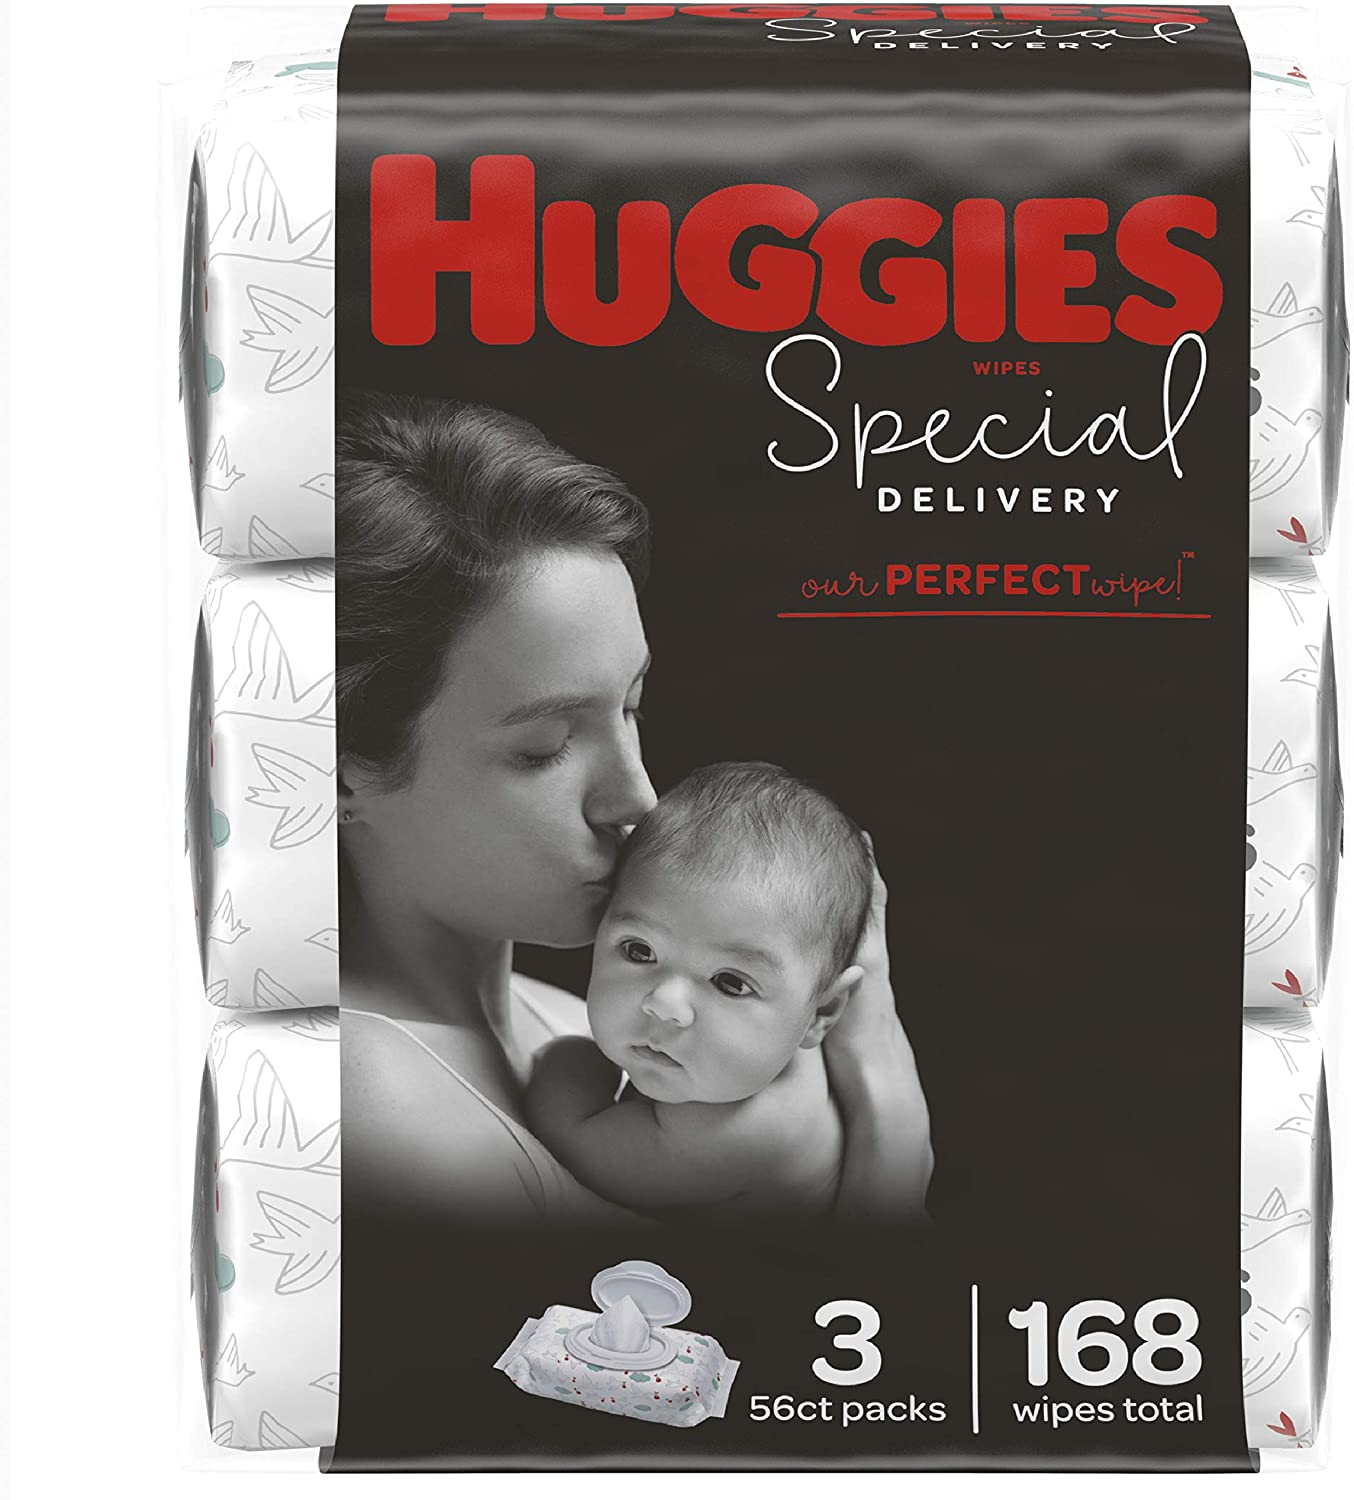 Huggies Special Delivery Hypoallergenic Baby Wipes, Unscented, 3 Flip-Top Packs of 56 Wipes Each, (168 Wipes Total)